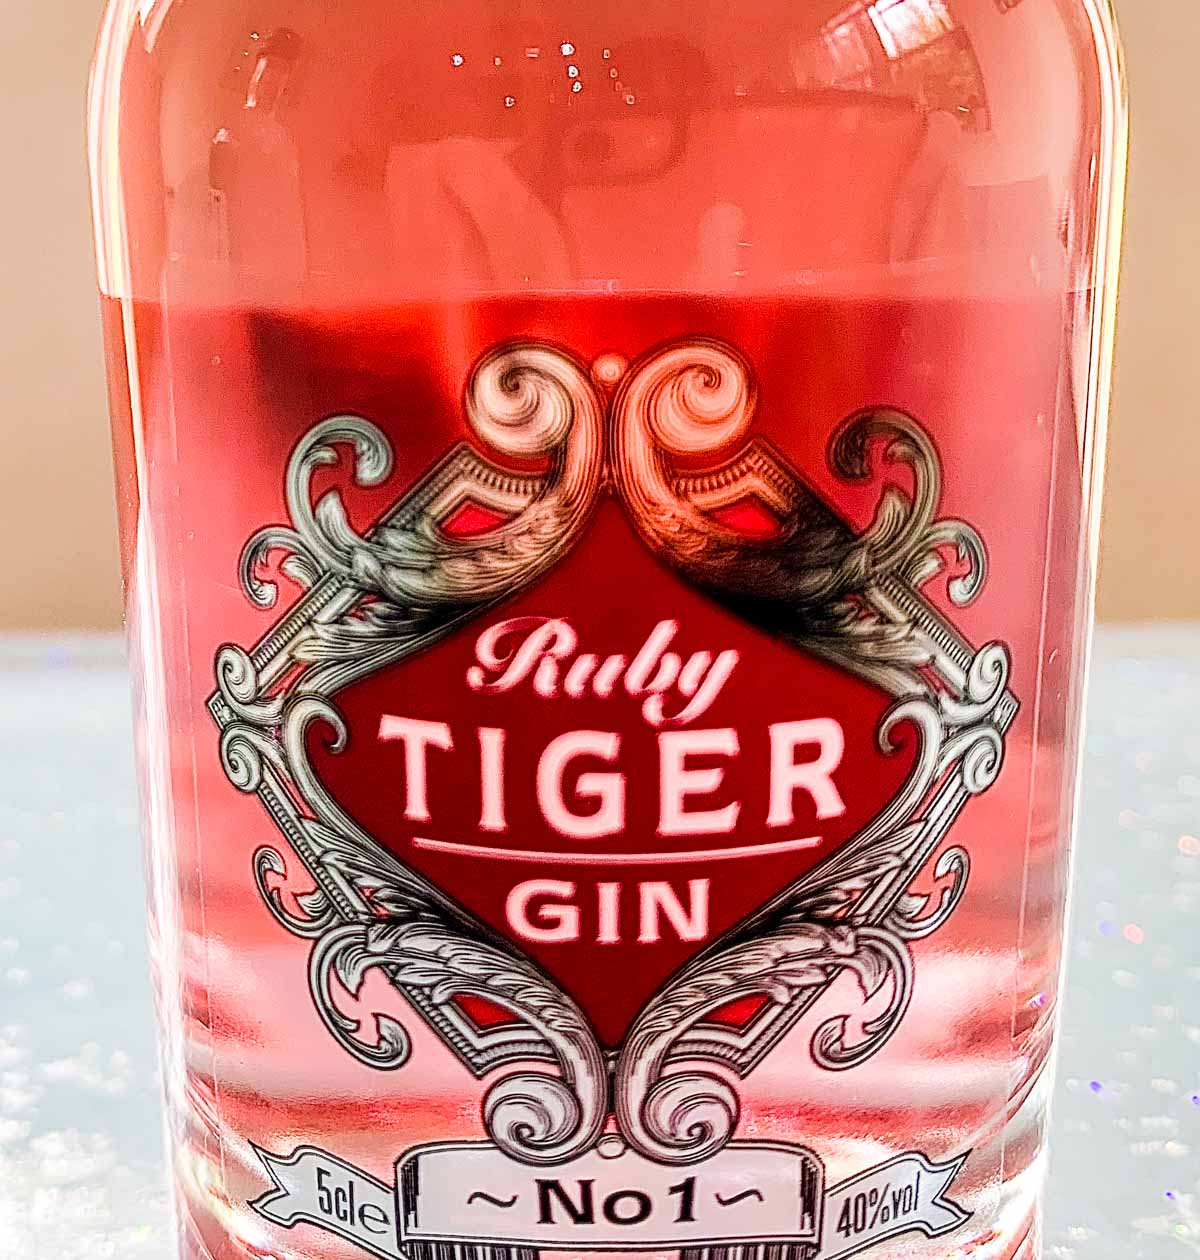 IMG_9652 Release Your Wild Side With Tiger Gin, The Great British Gin